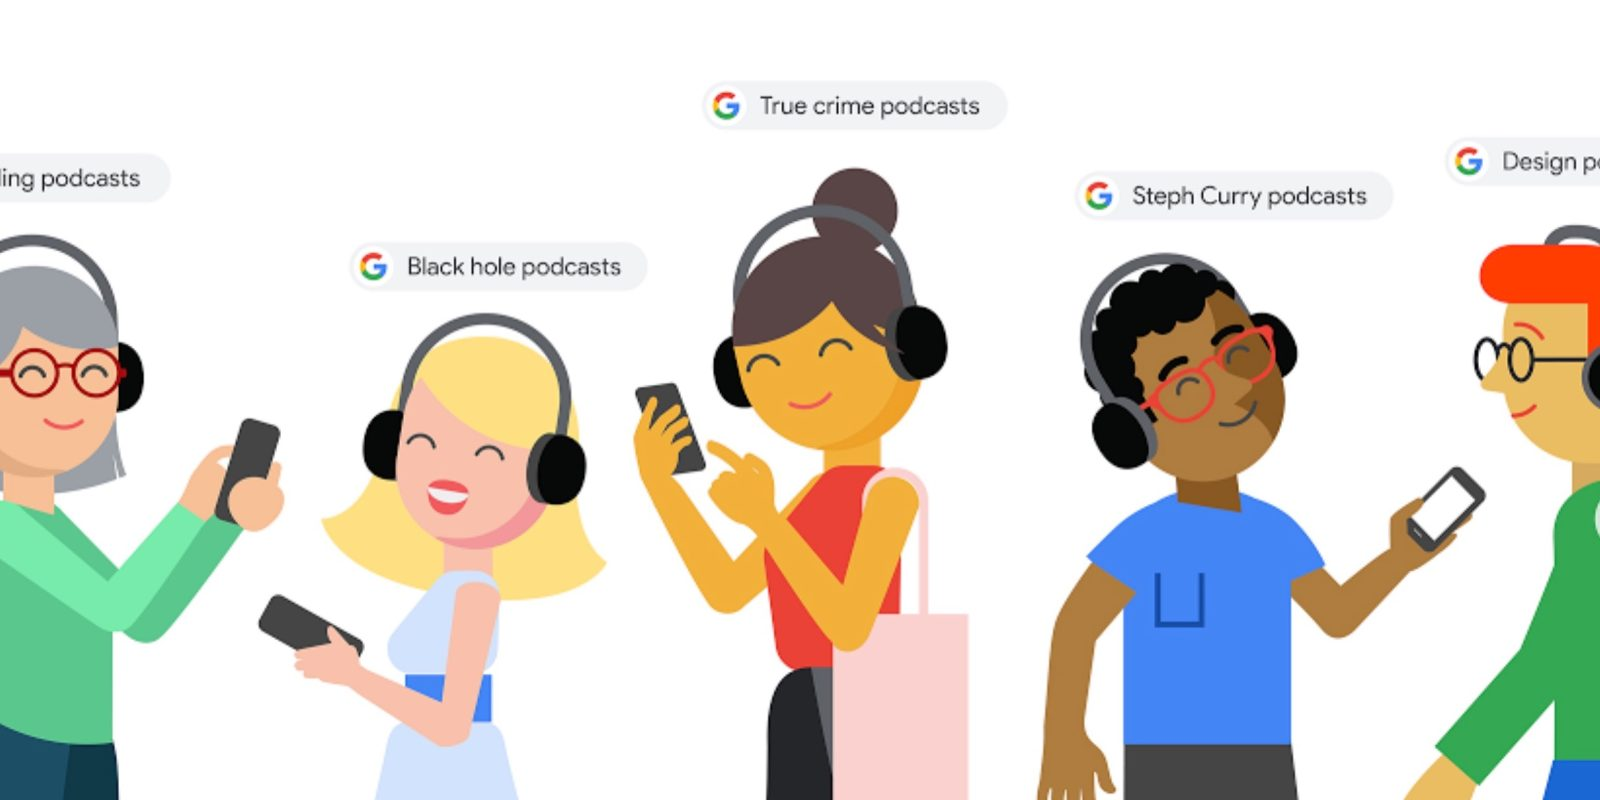 Google Podcasts - 9to5Google